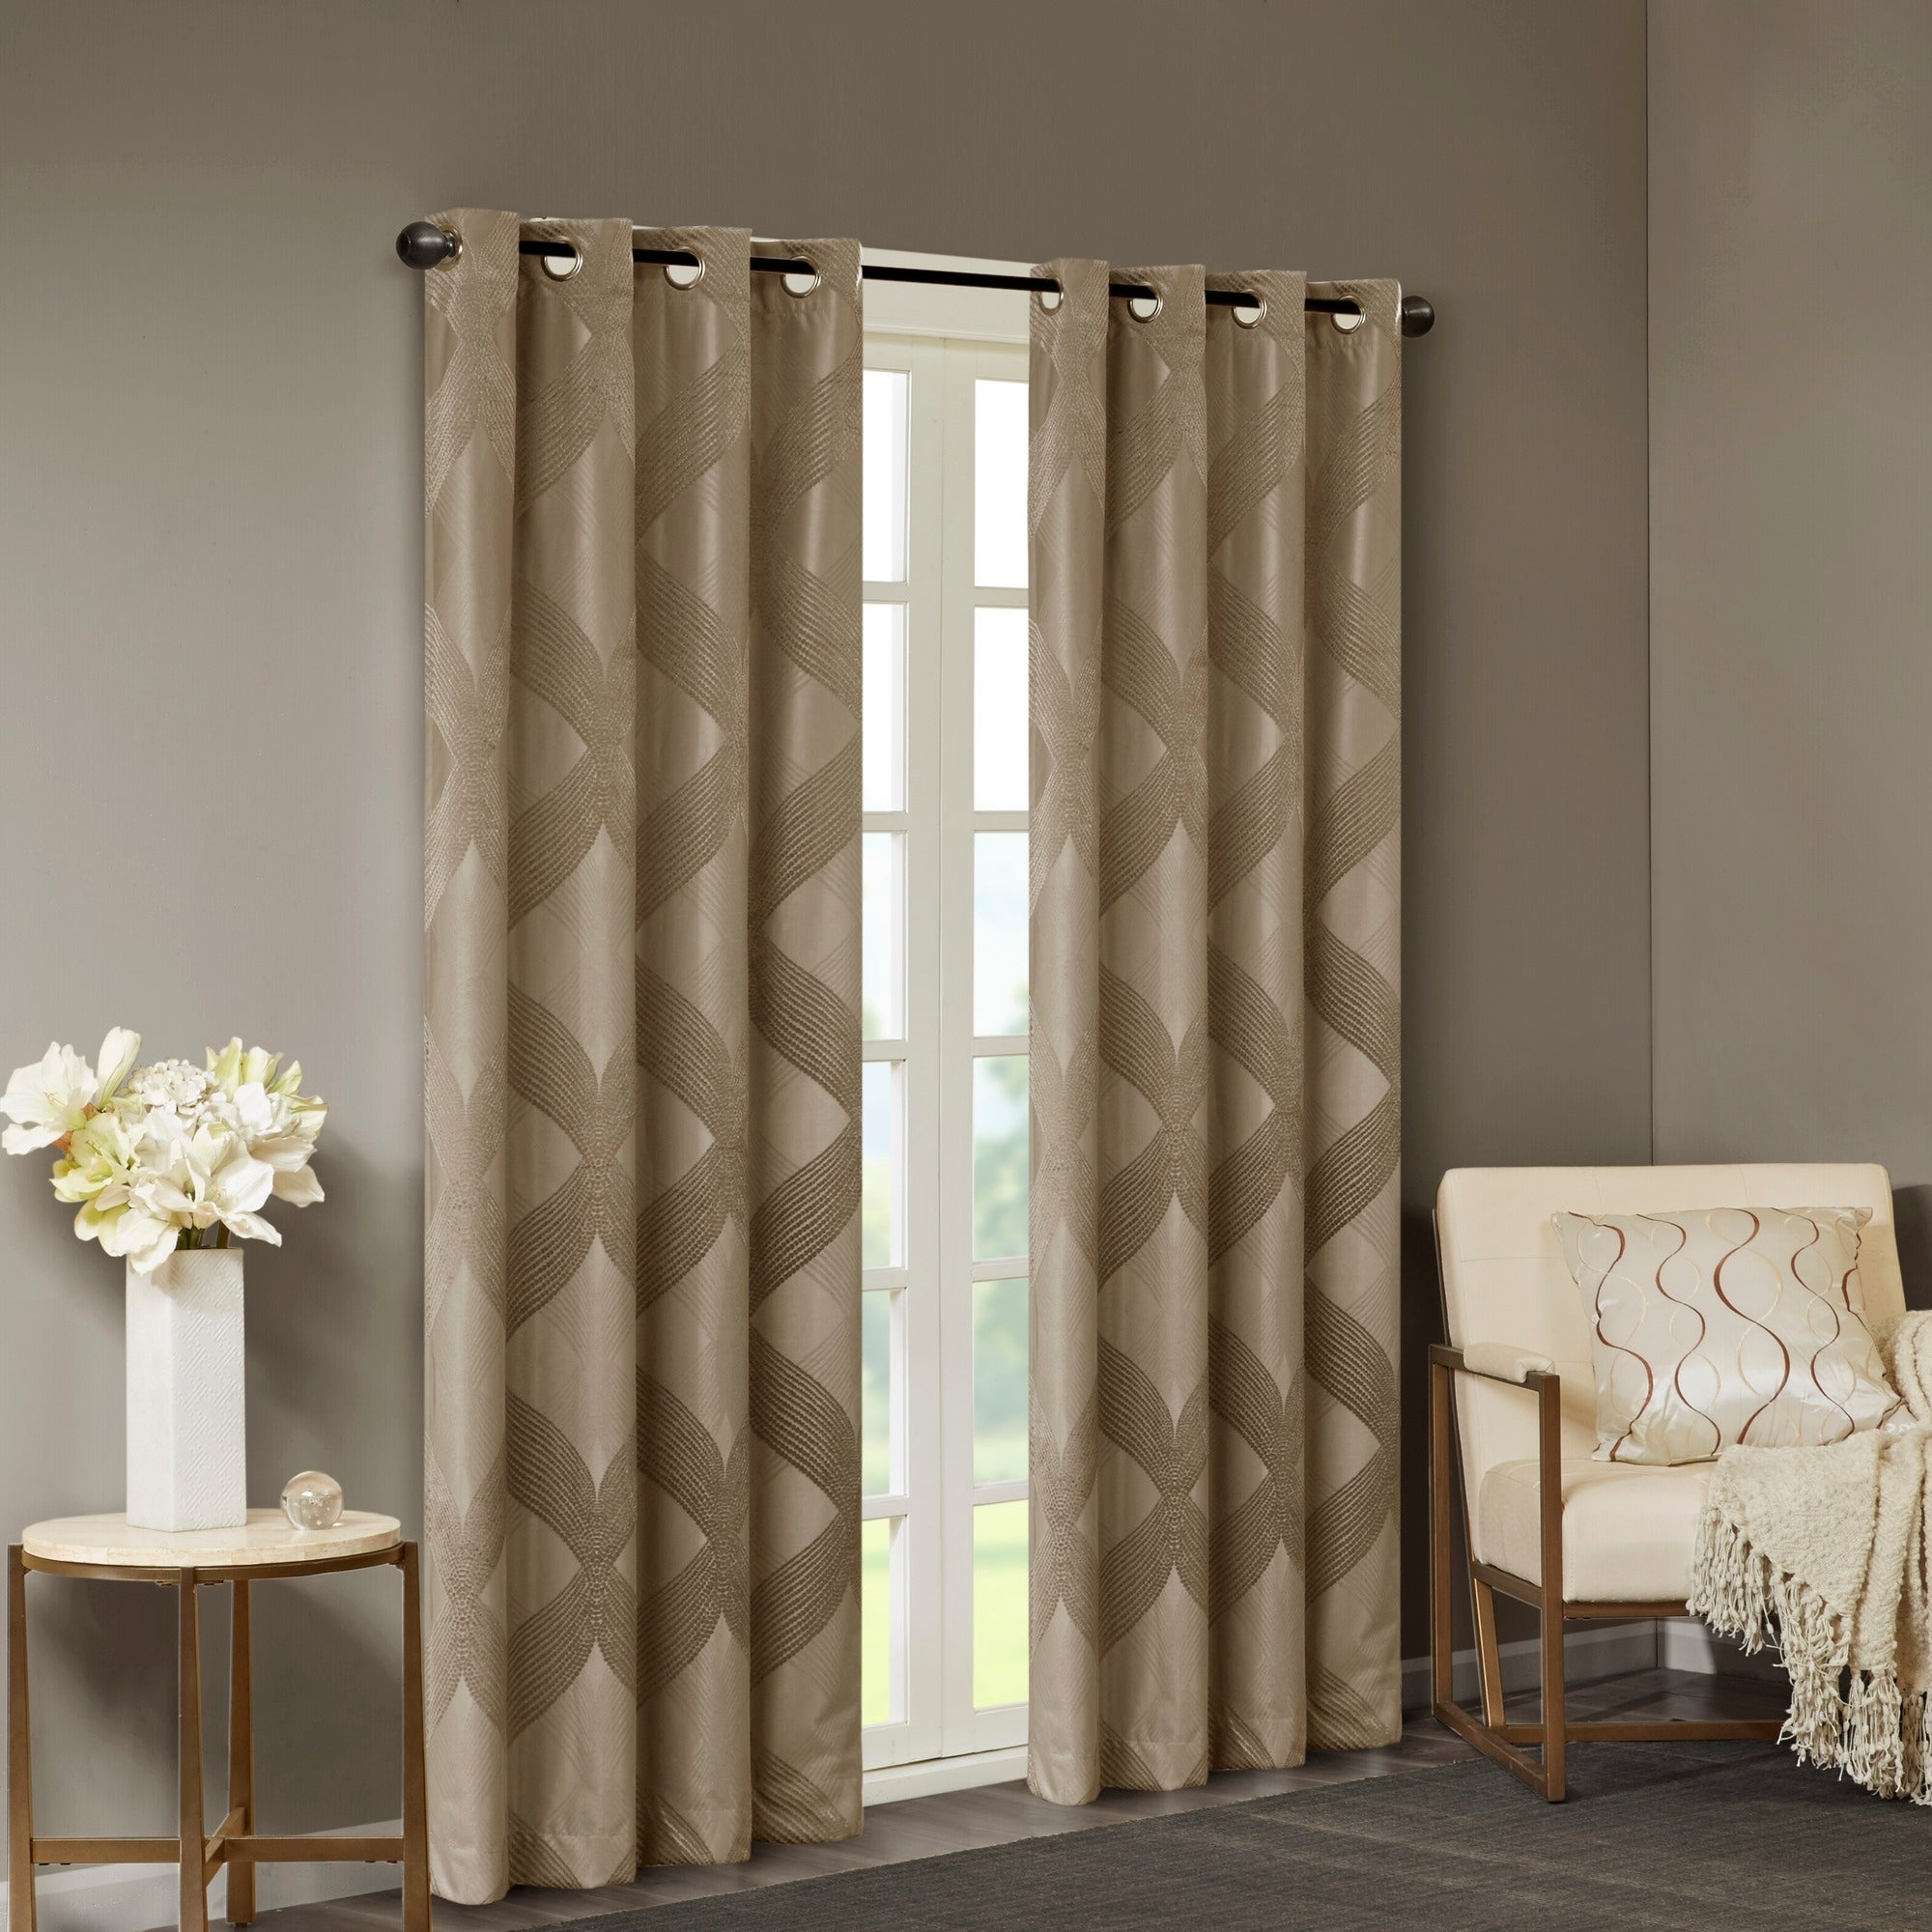 Sunsmart Abel Ogee Knitted Jacquard Total Blackout Curtain Panel For Gracewood Hollow Tucakovic Energy Efficient Fabric Blackout Curtains (View 7 of 20)